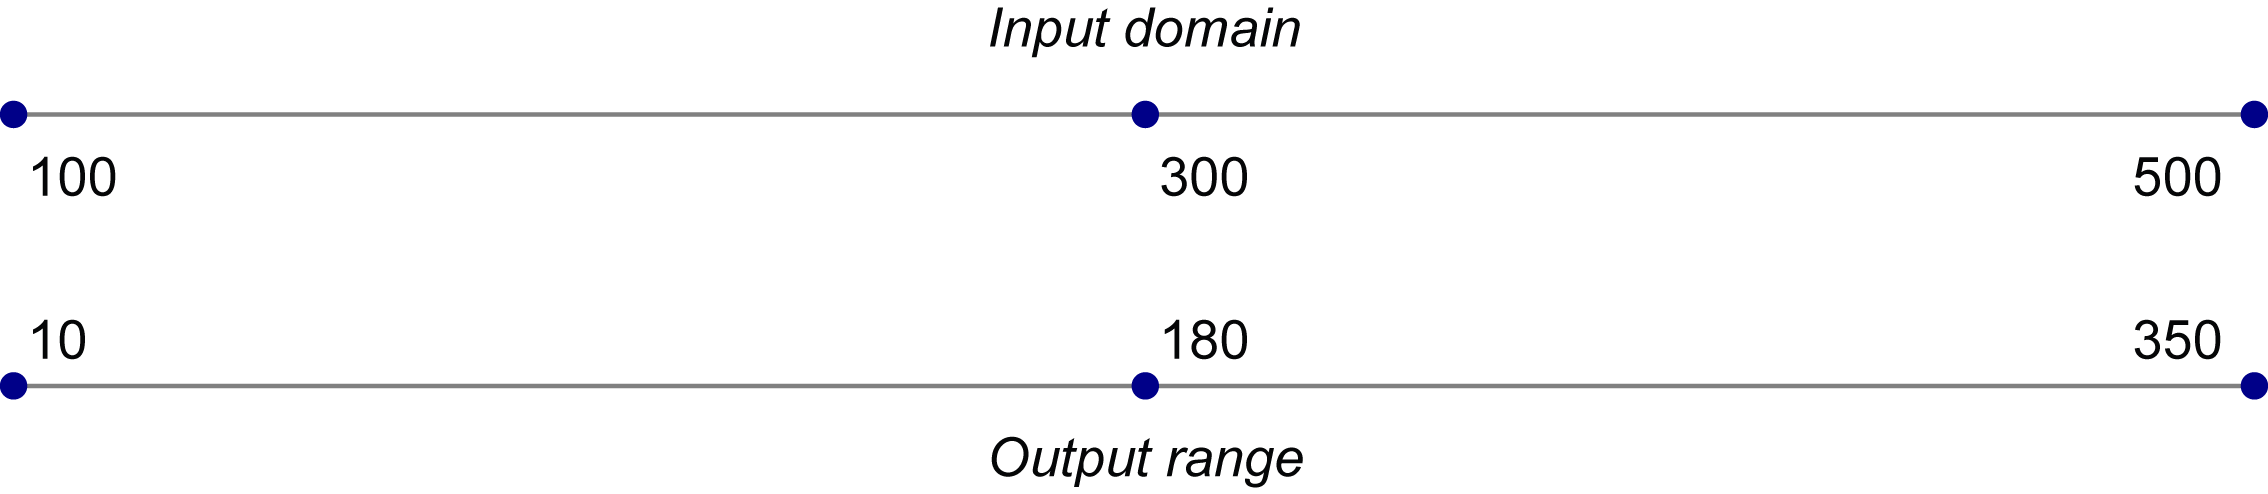 An input domain and an output range, visualized as parallel axes